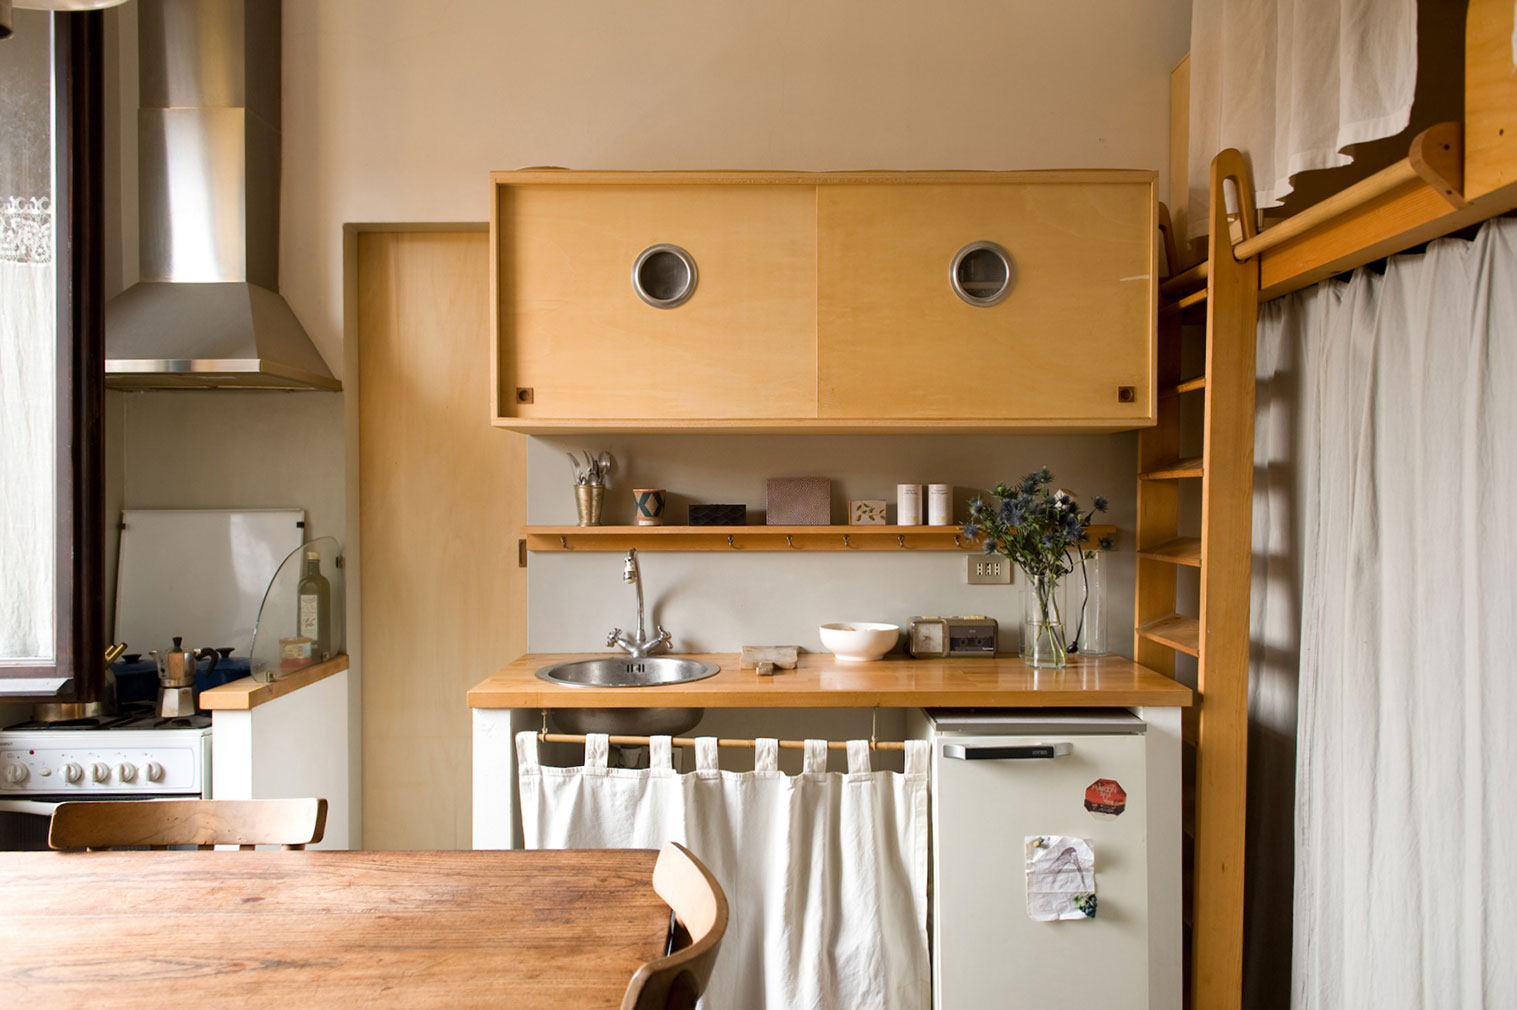 Andrea Wyner's micro home in Milan